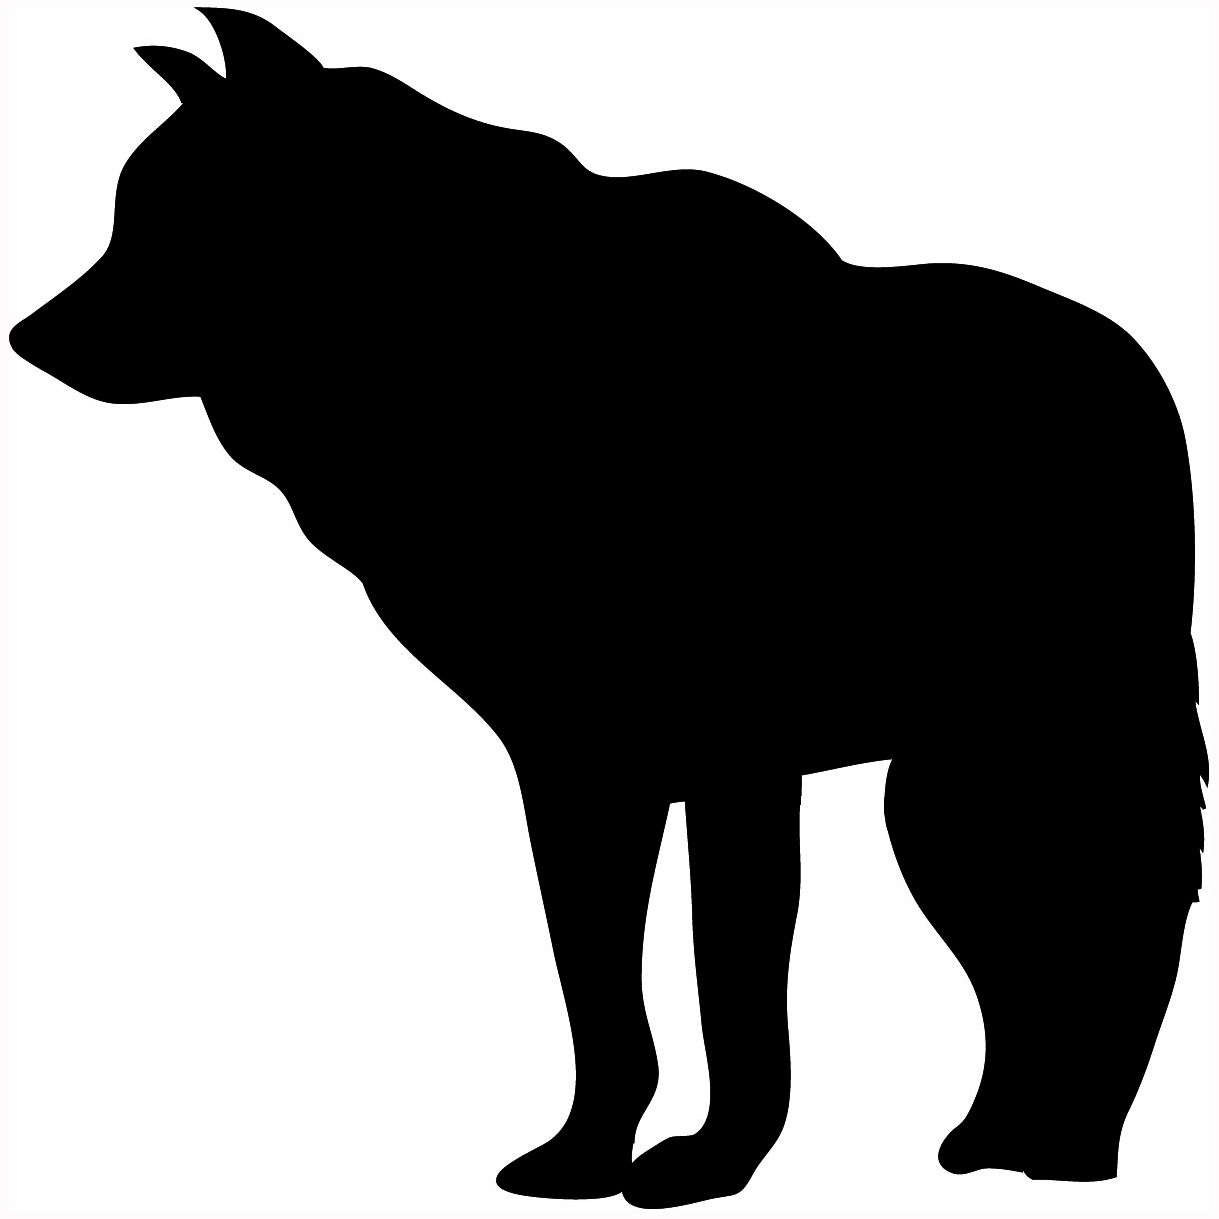 Wolf silhouette clipart graphic transparent library Wolf silhouette.   Silhouettes   Wolf silhouette, Silhouette ... graphic transparent library